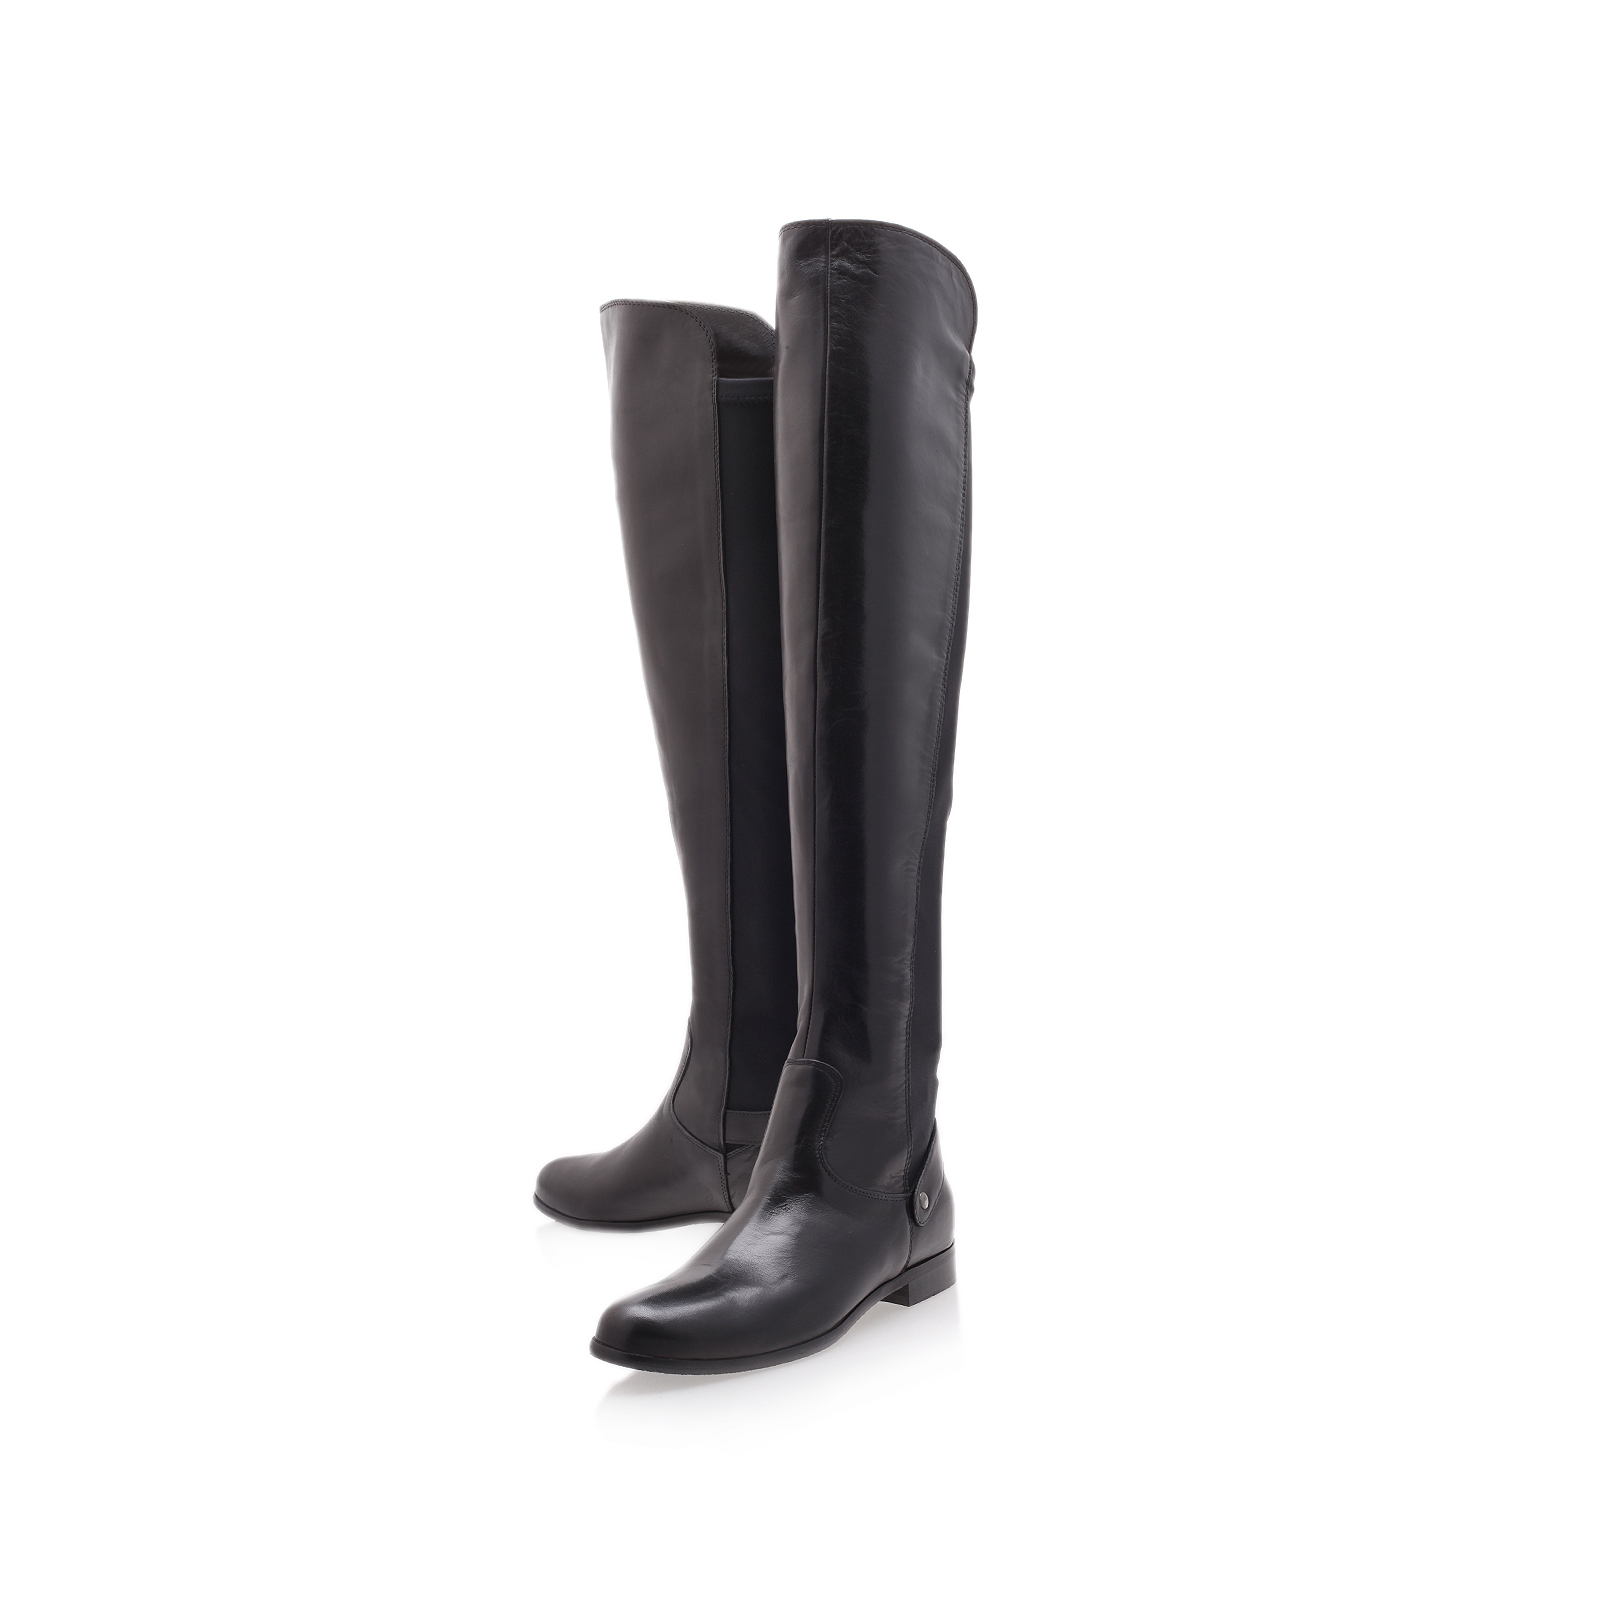 WOOD Carvela Wood Black Leather Flat Knee High Boots by CARVELA KURT GEIGER